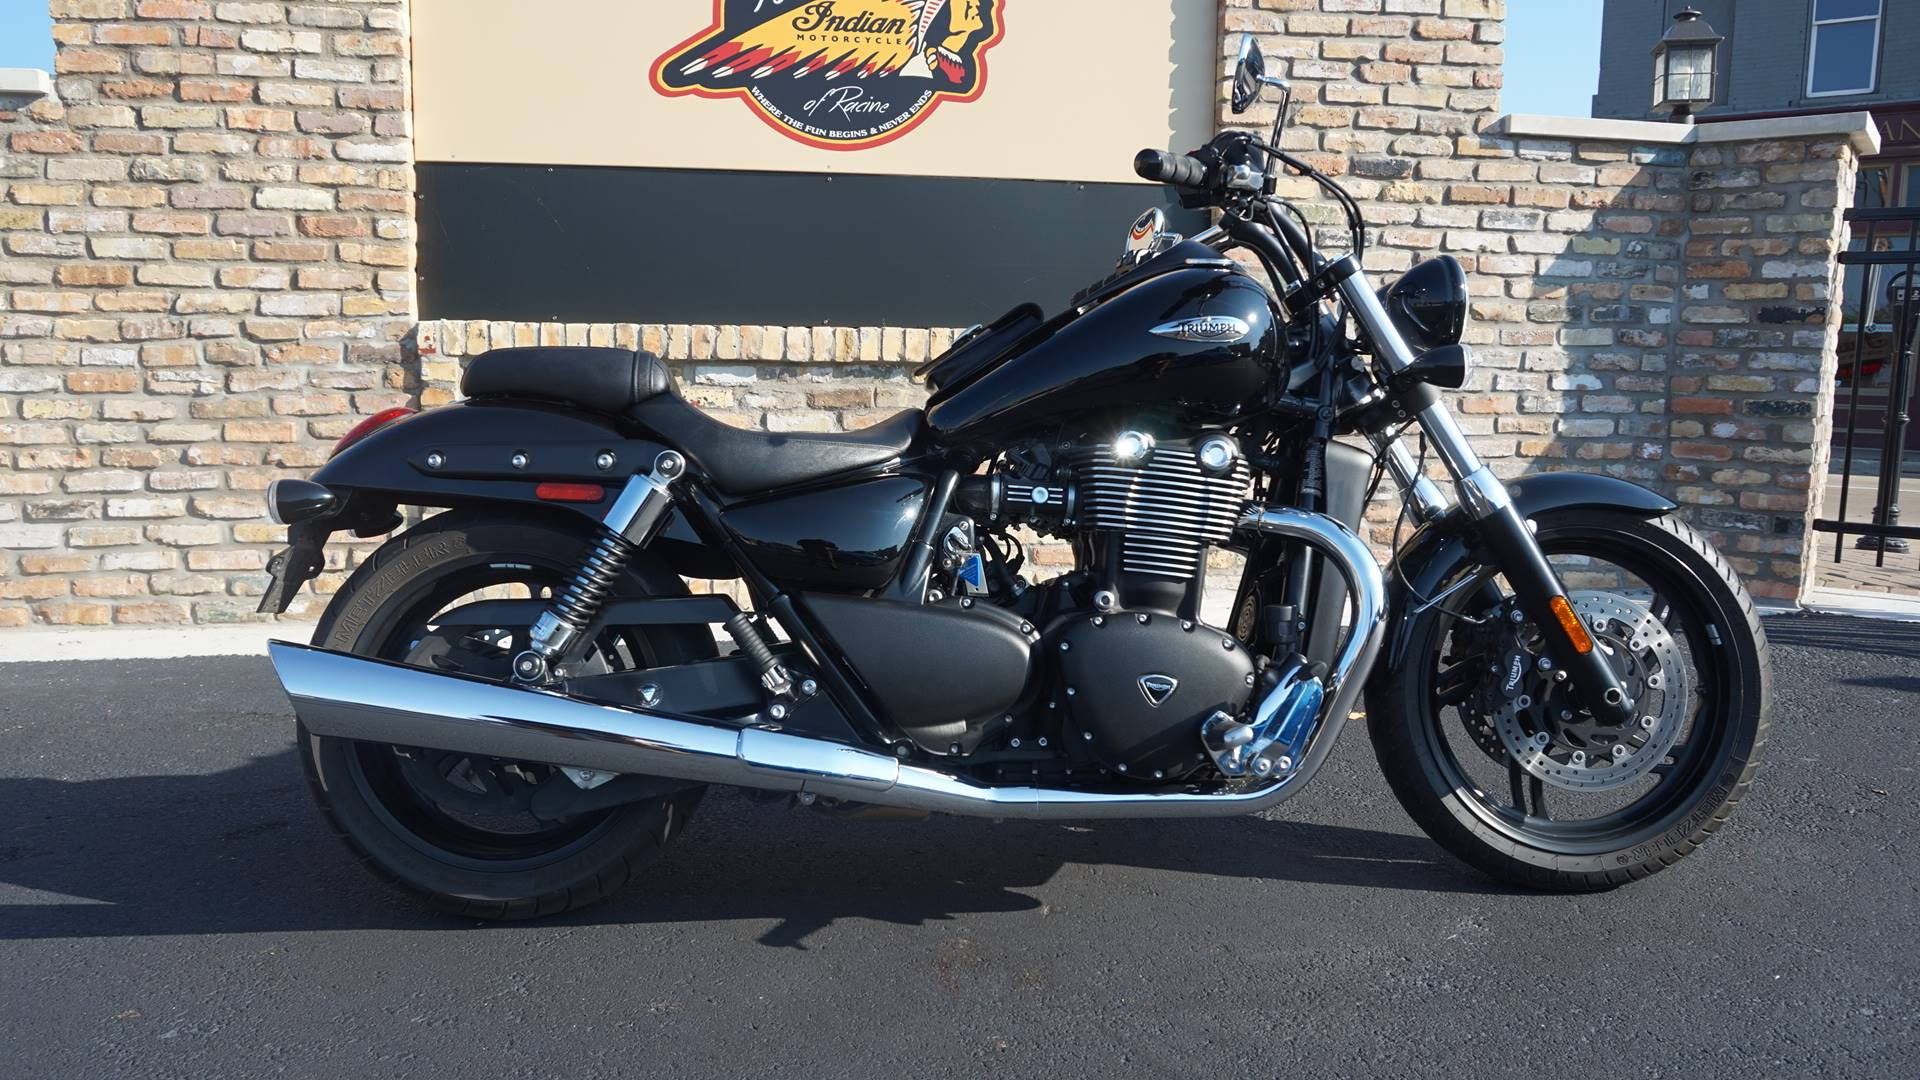 Used 2015 Triumph Thunderbird Storm ABS Motorcycles in Racine, WI ...